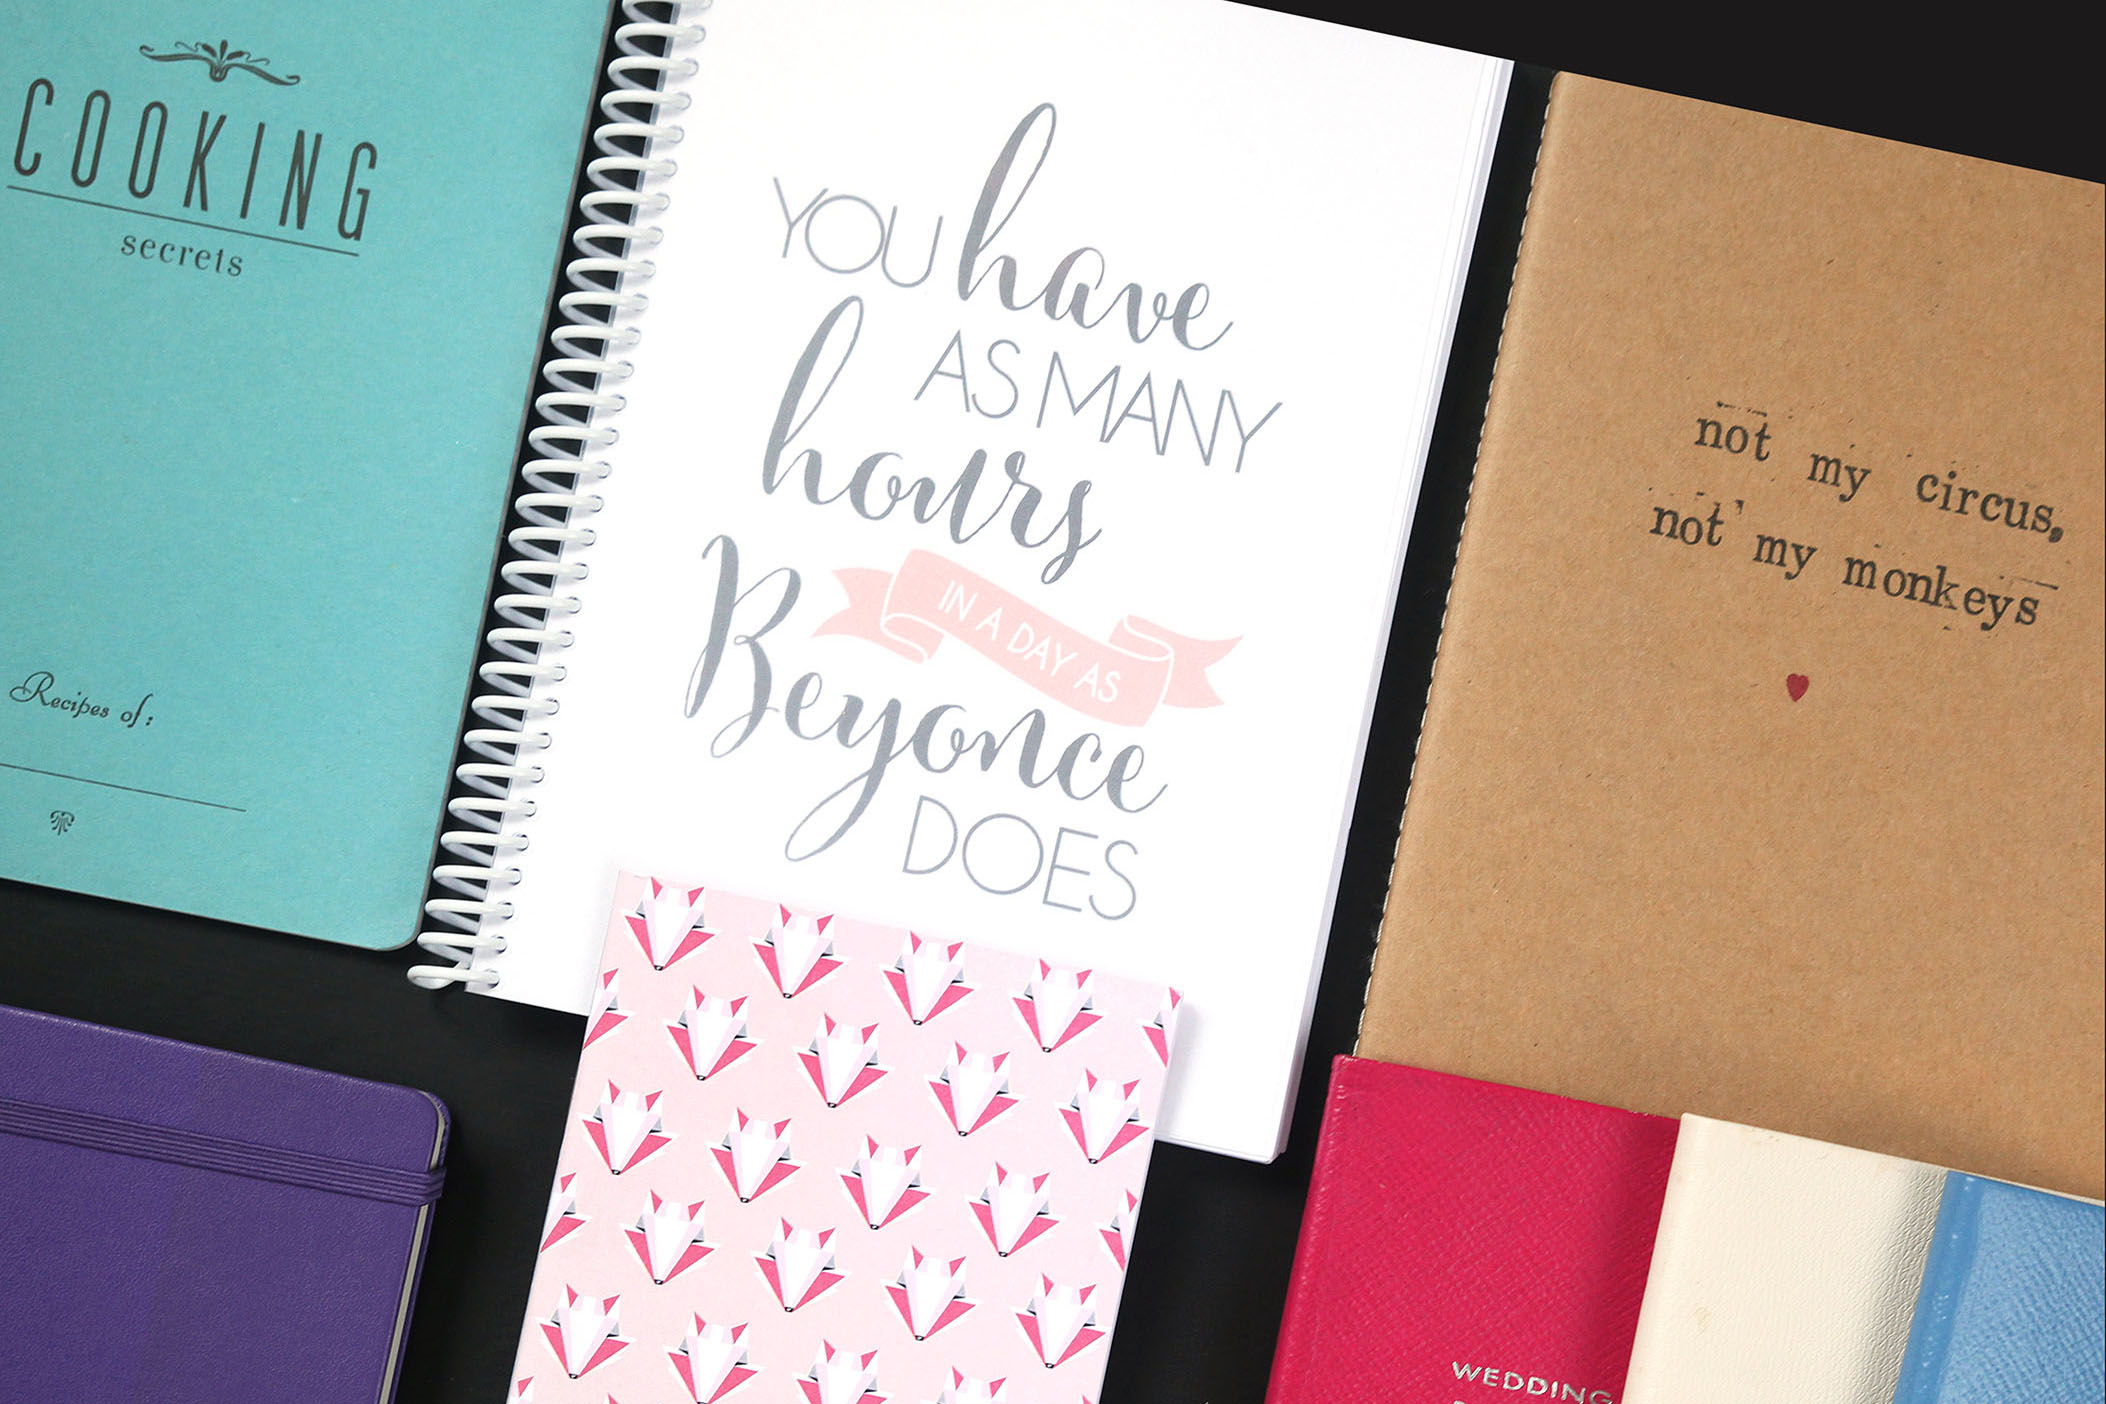 Beyoncé   notebook by   misspippadesigns  at Etsy    Not my circus , not my monkeys   notebook by   elsieandnell   at Etsy.